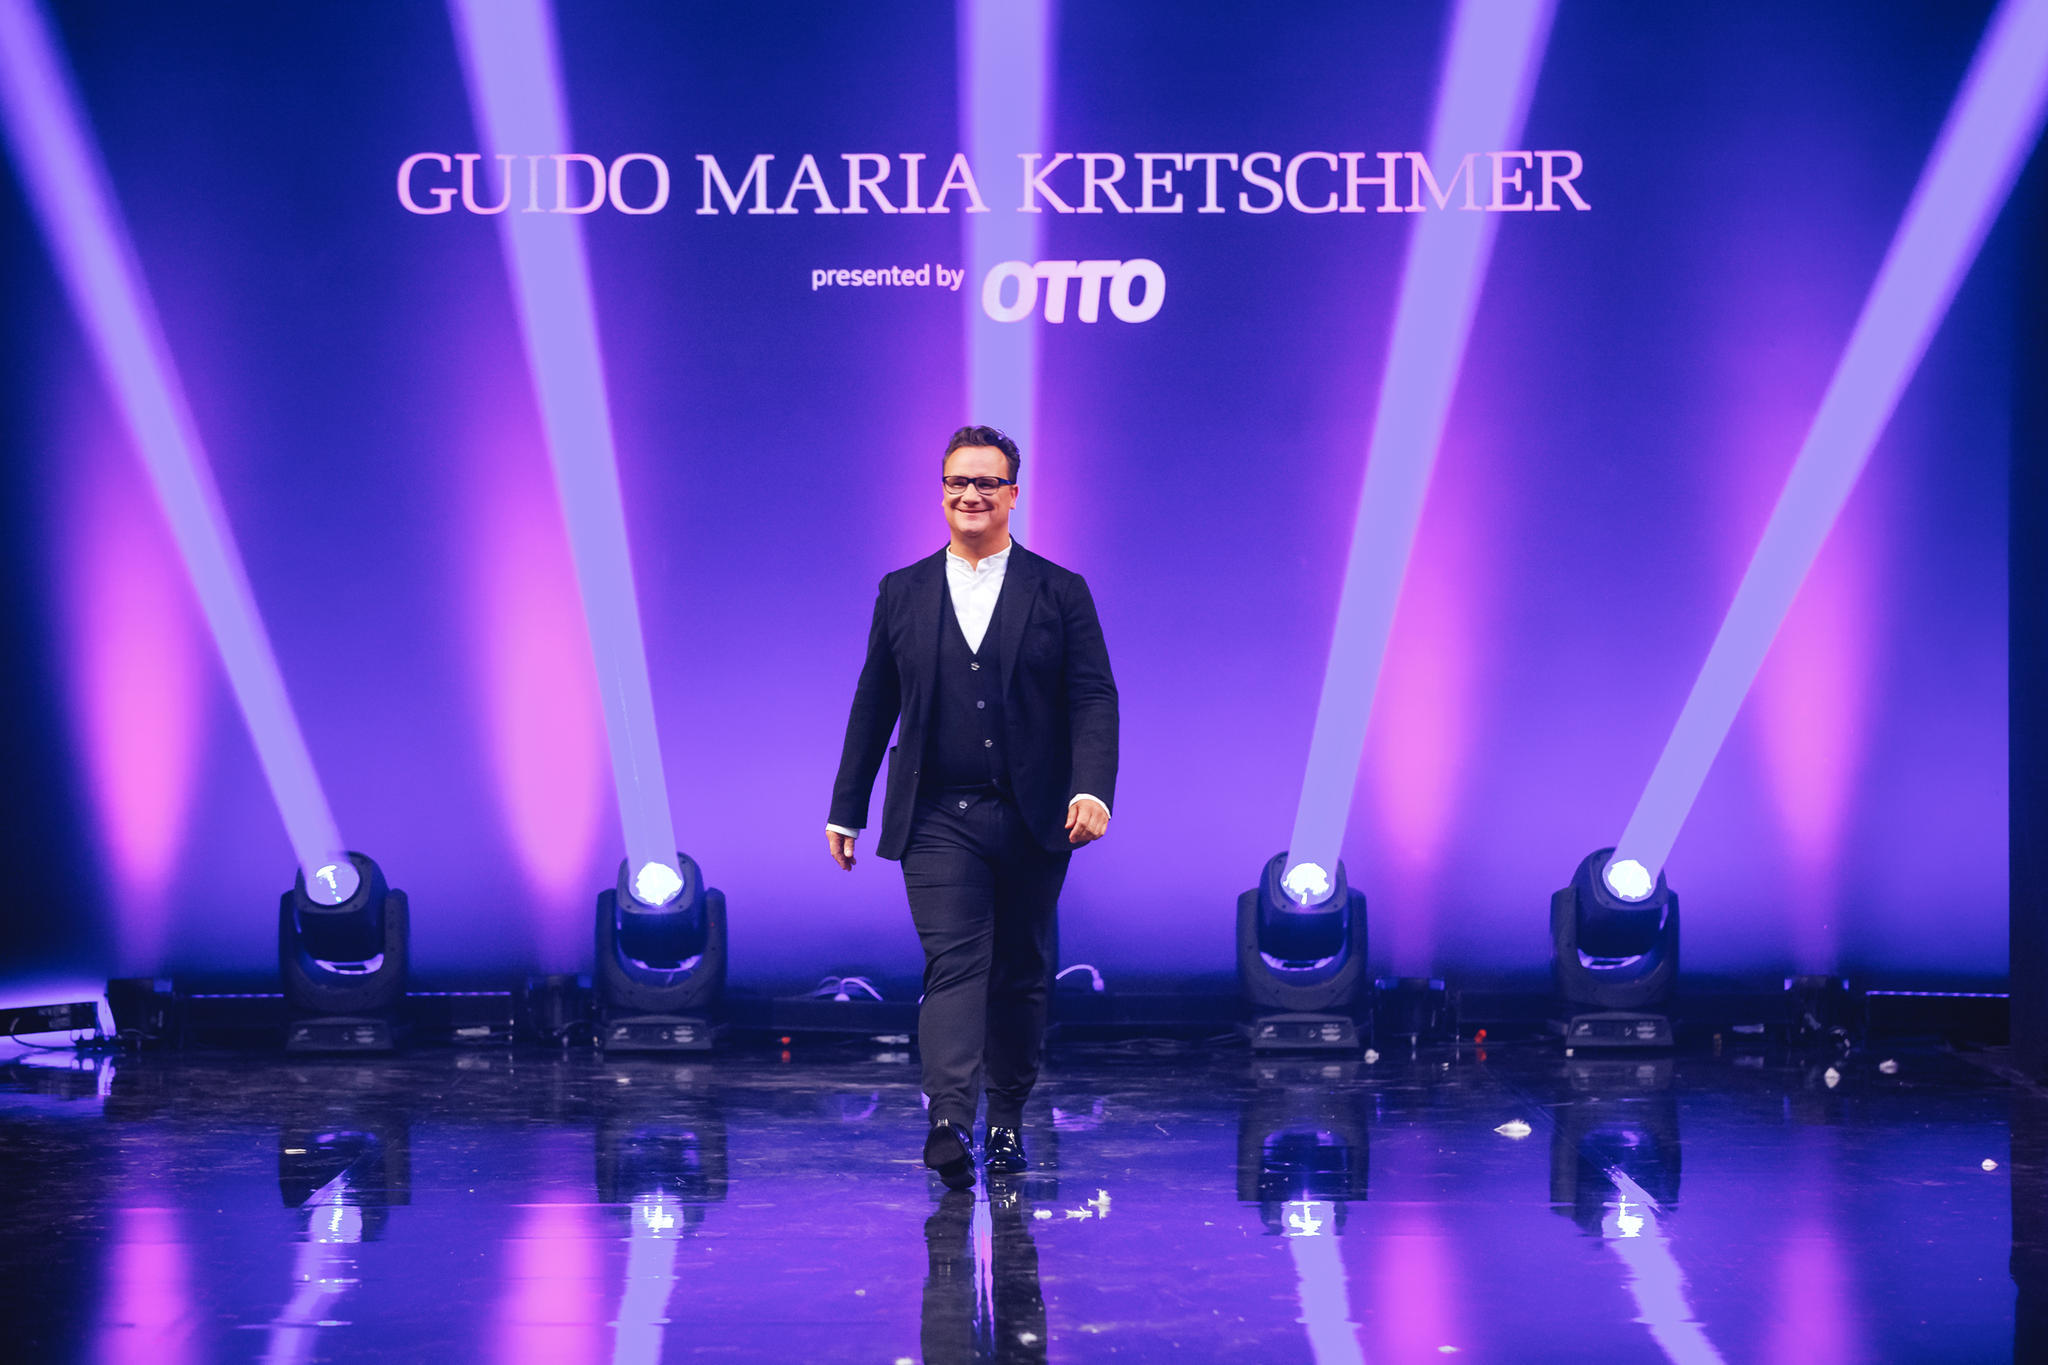 Otto De Guido Maria Kretschmer Guido Maria Kretschmer Er Eröffnet Die Fashion Week In Berlin